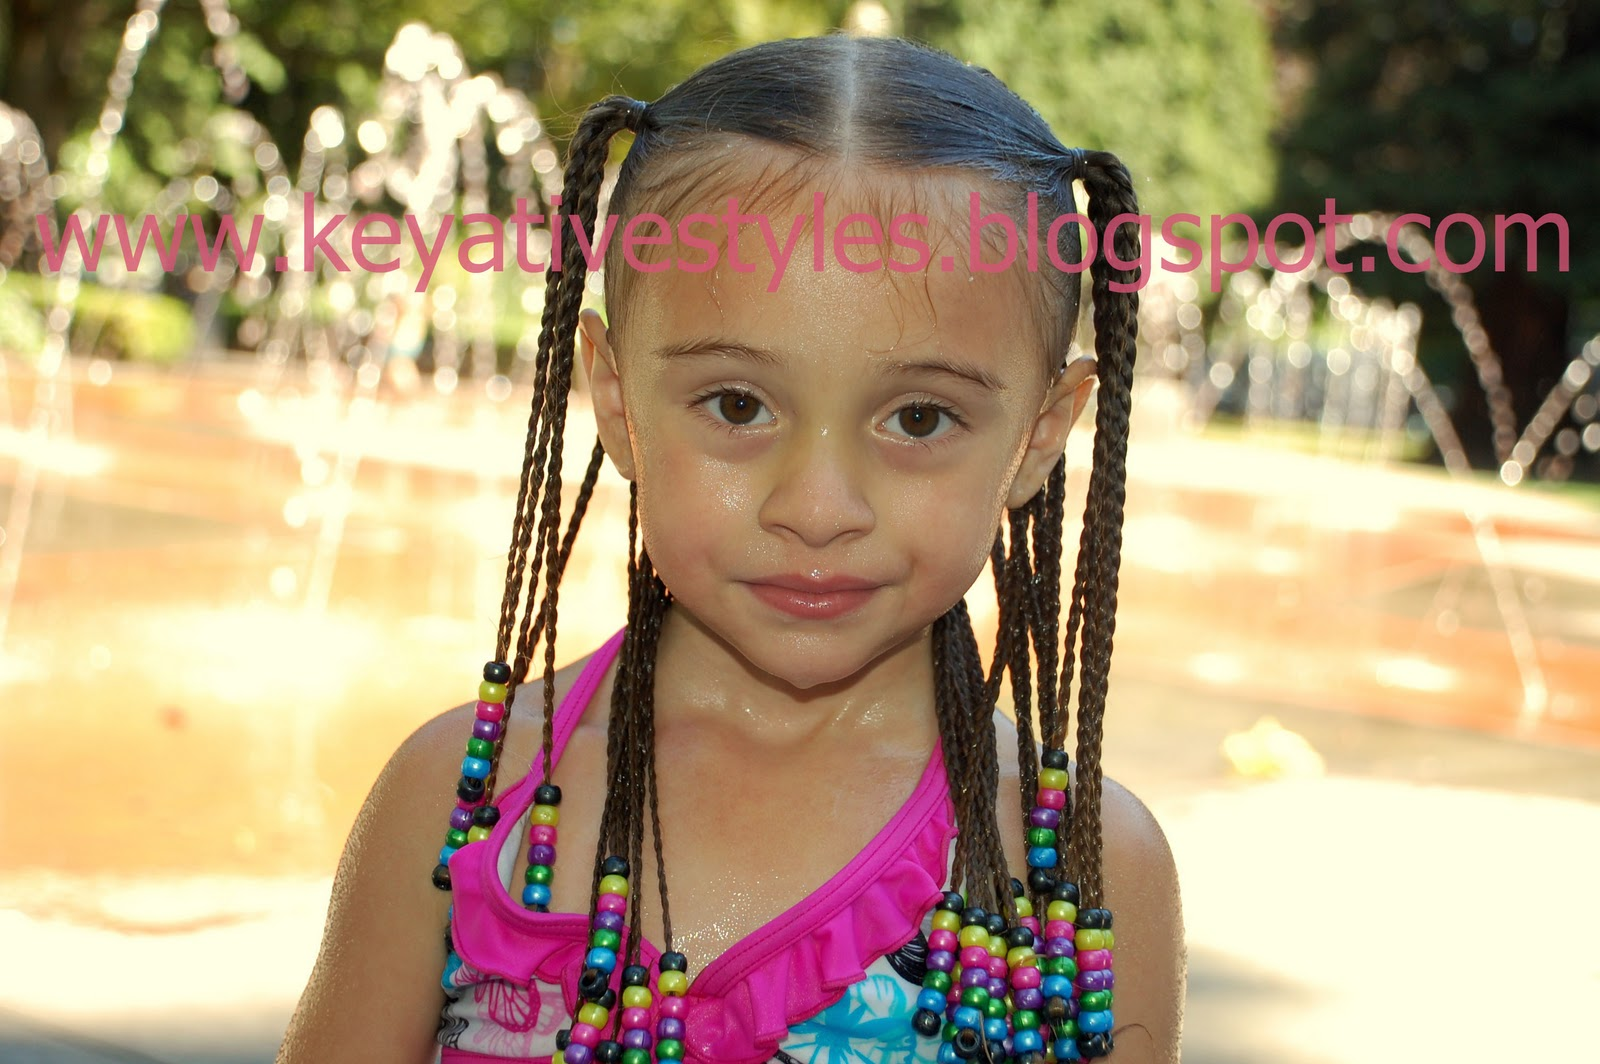 Hair Styles Braids With Beads: Hair Today: Box Braids With Floating Beads